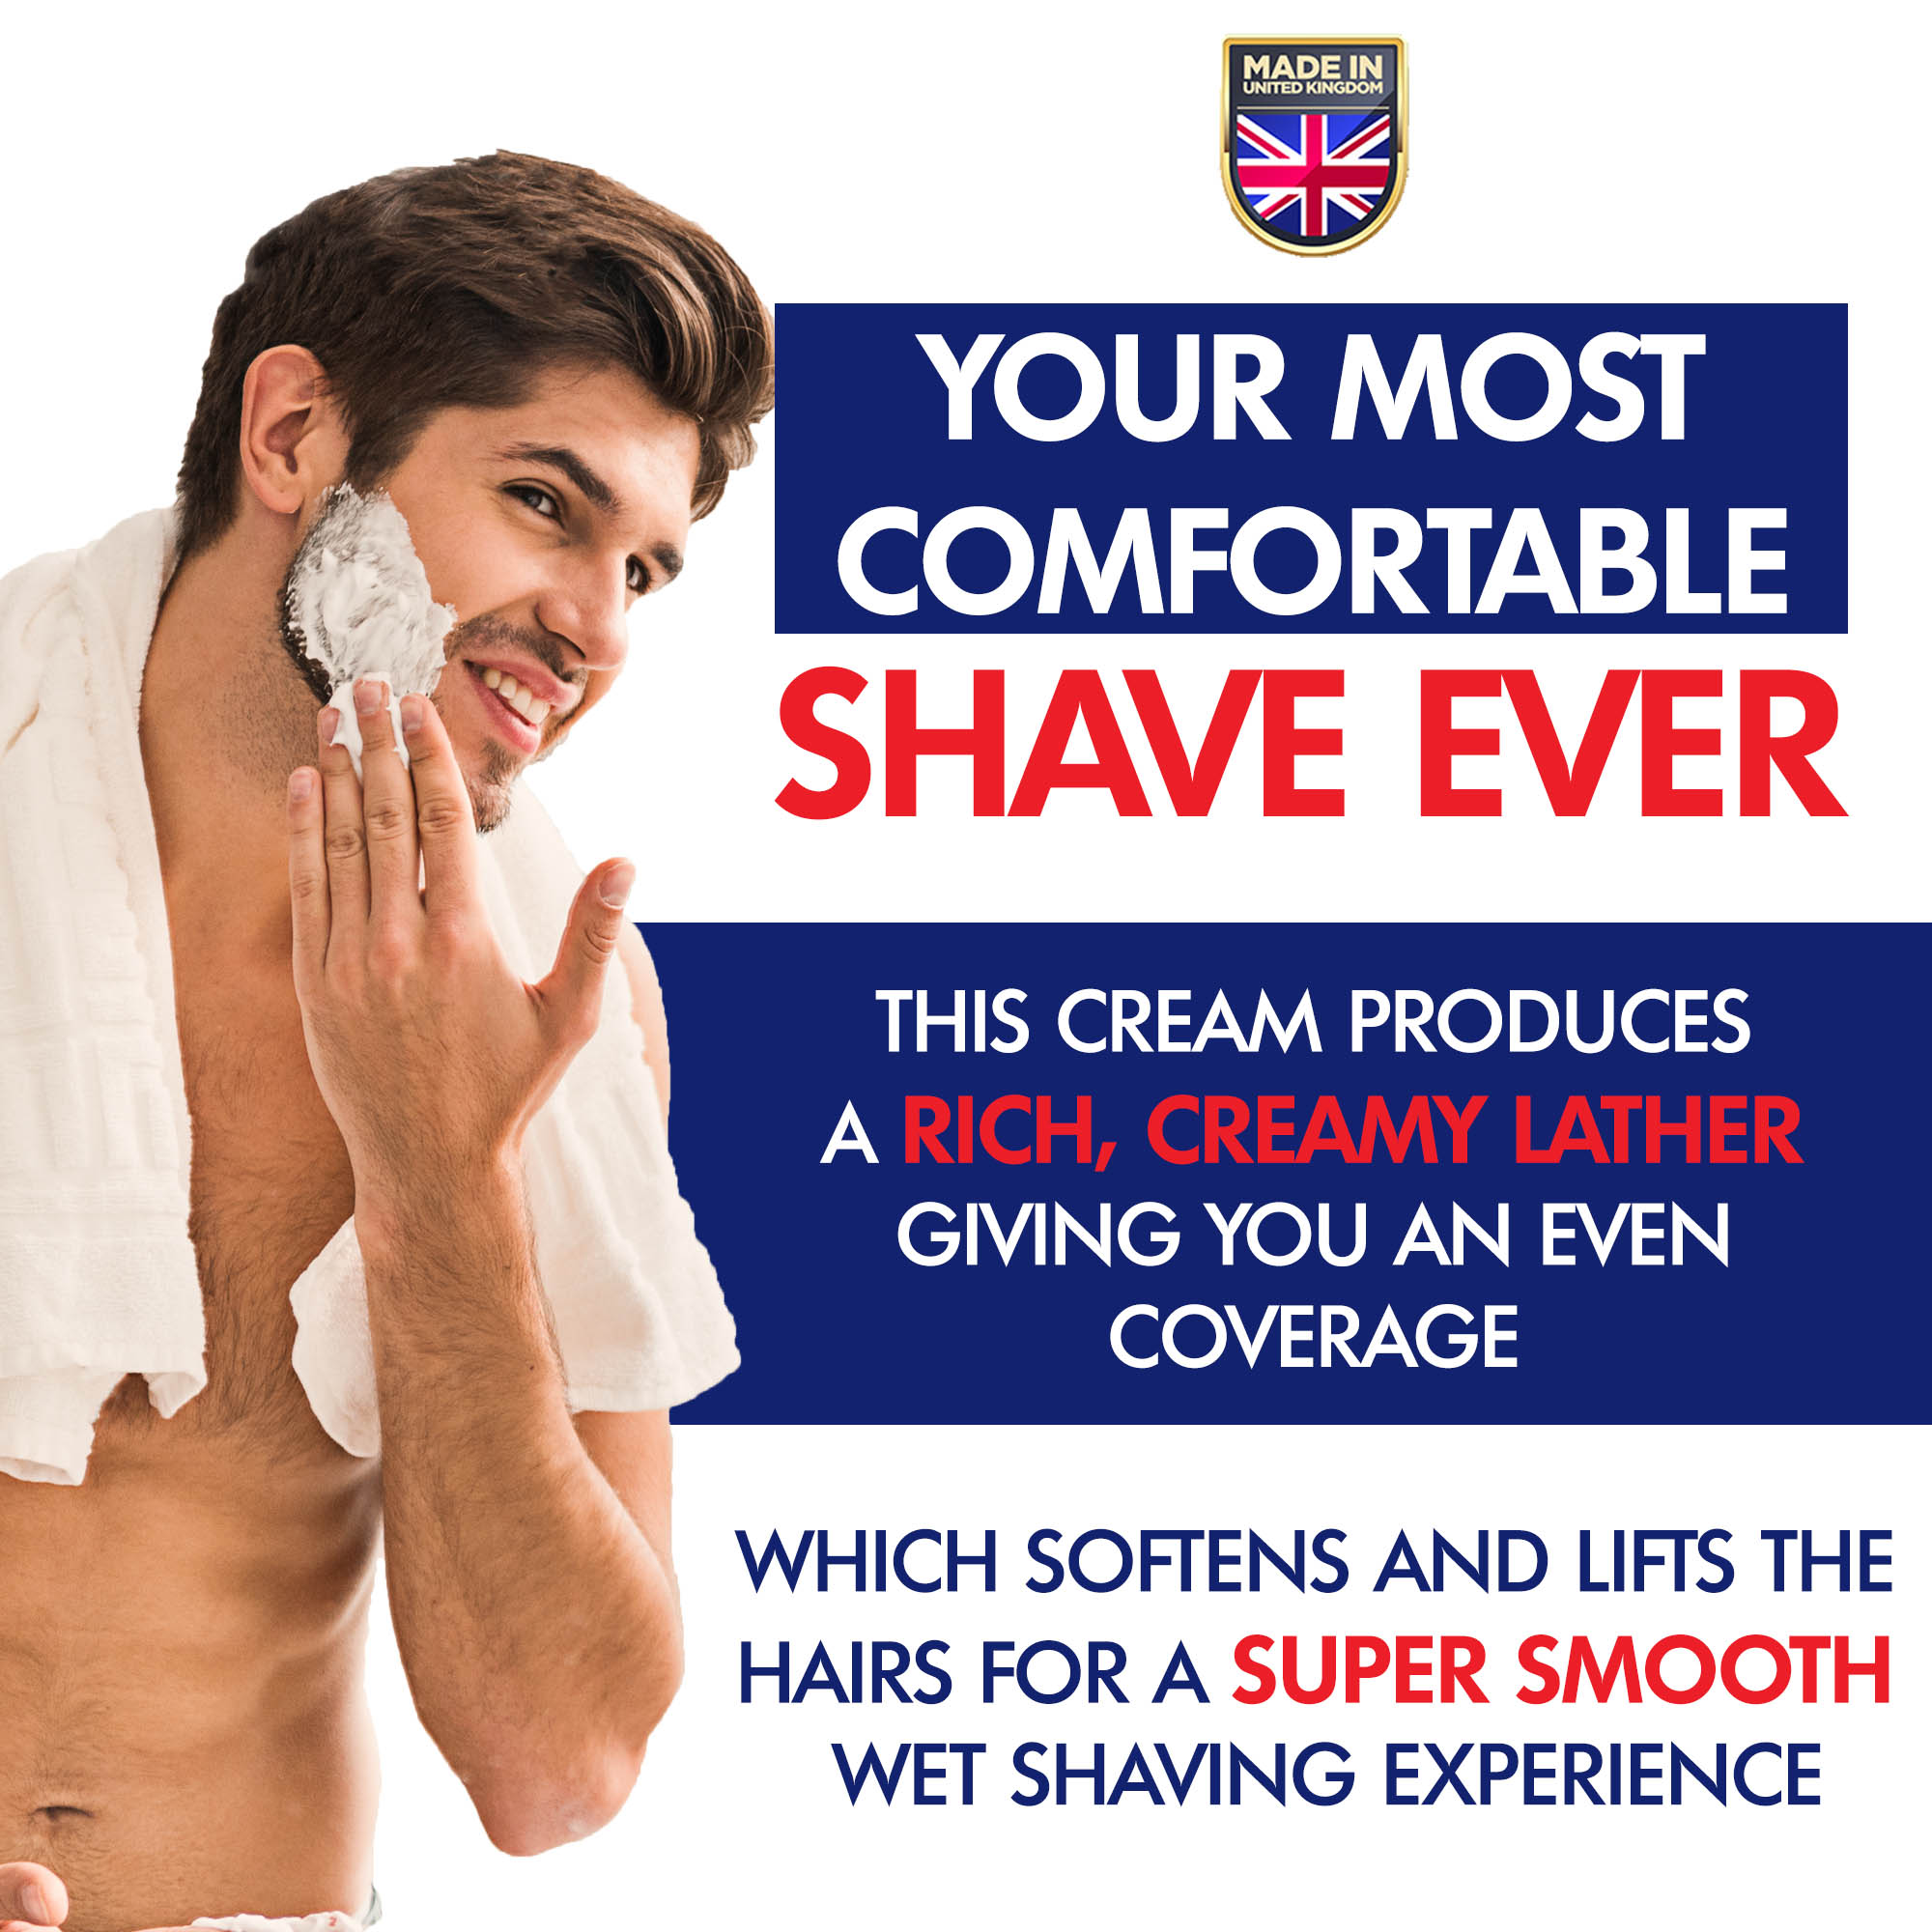 shaving every day is good for you if you use good products